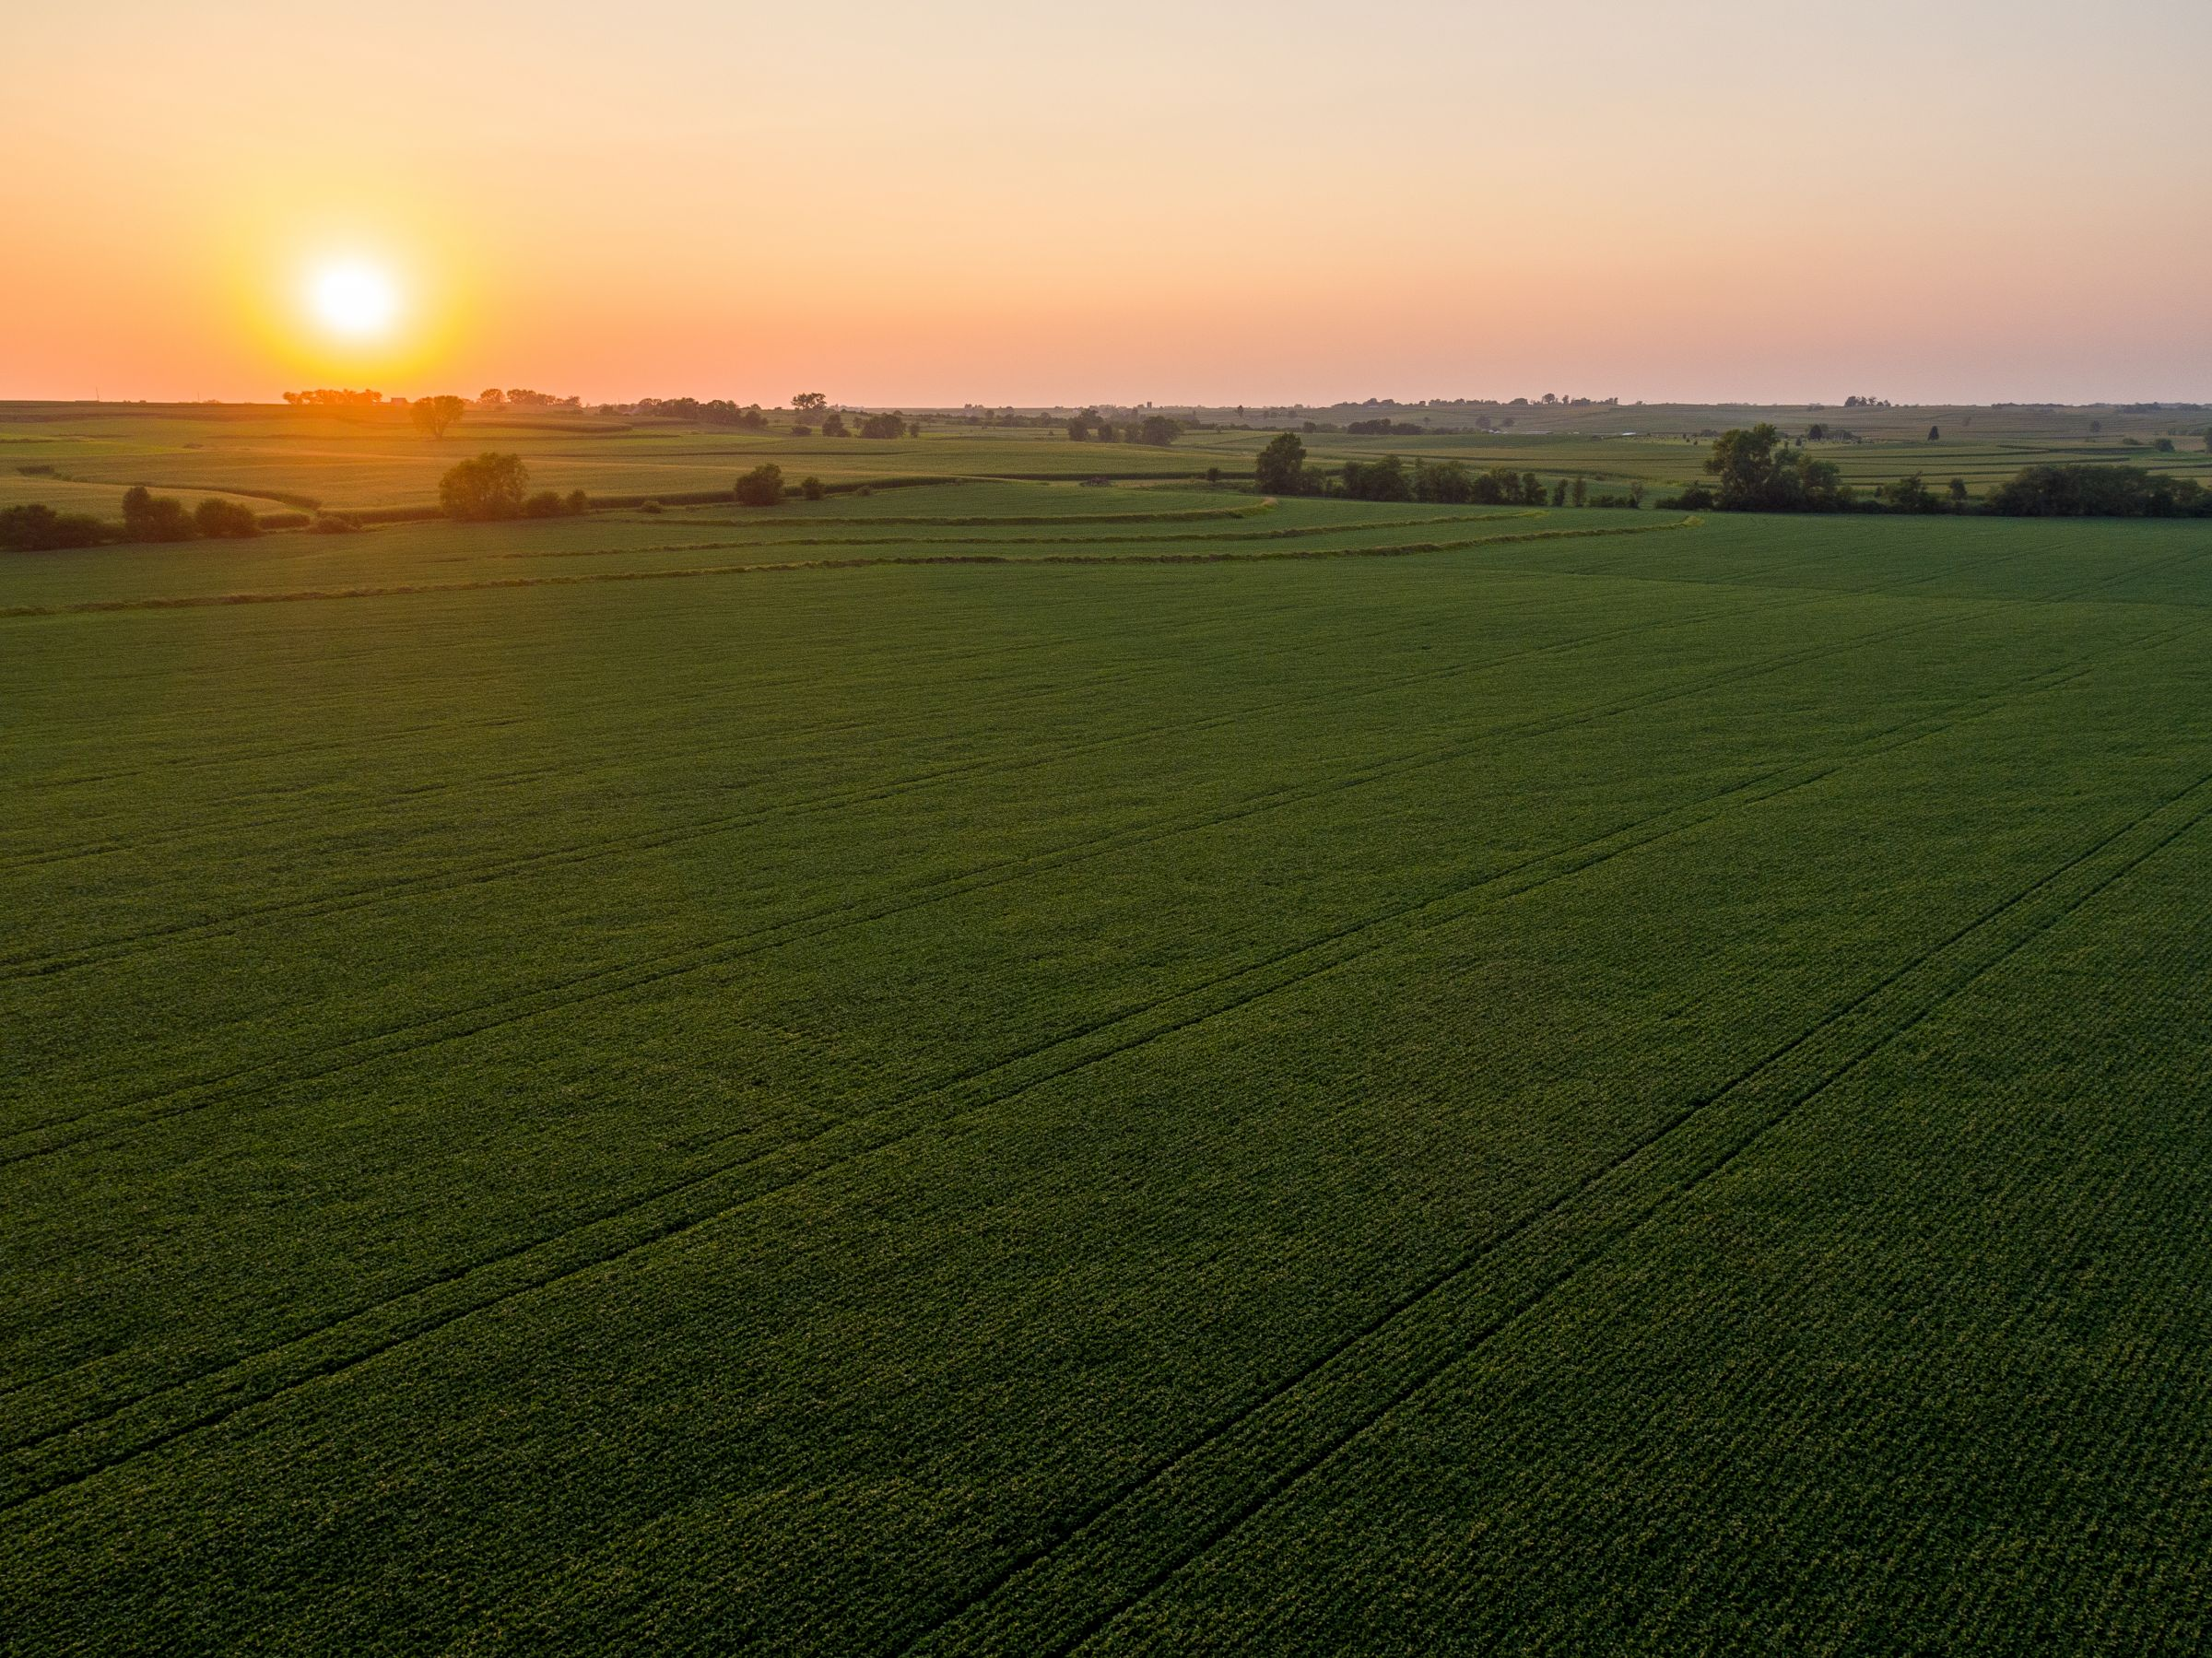 auctions-land-montgomery-county-iowa-703-acres-listing-number-15724-2-2021-09-07-151056.jpeg